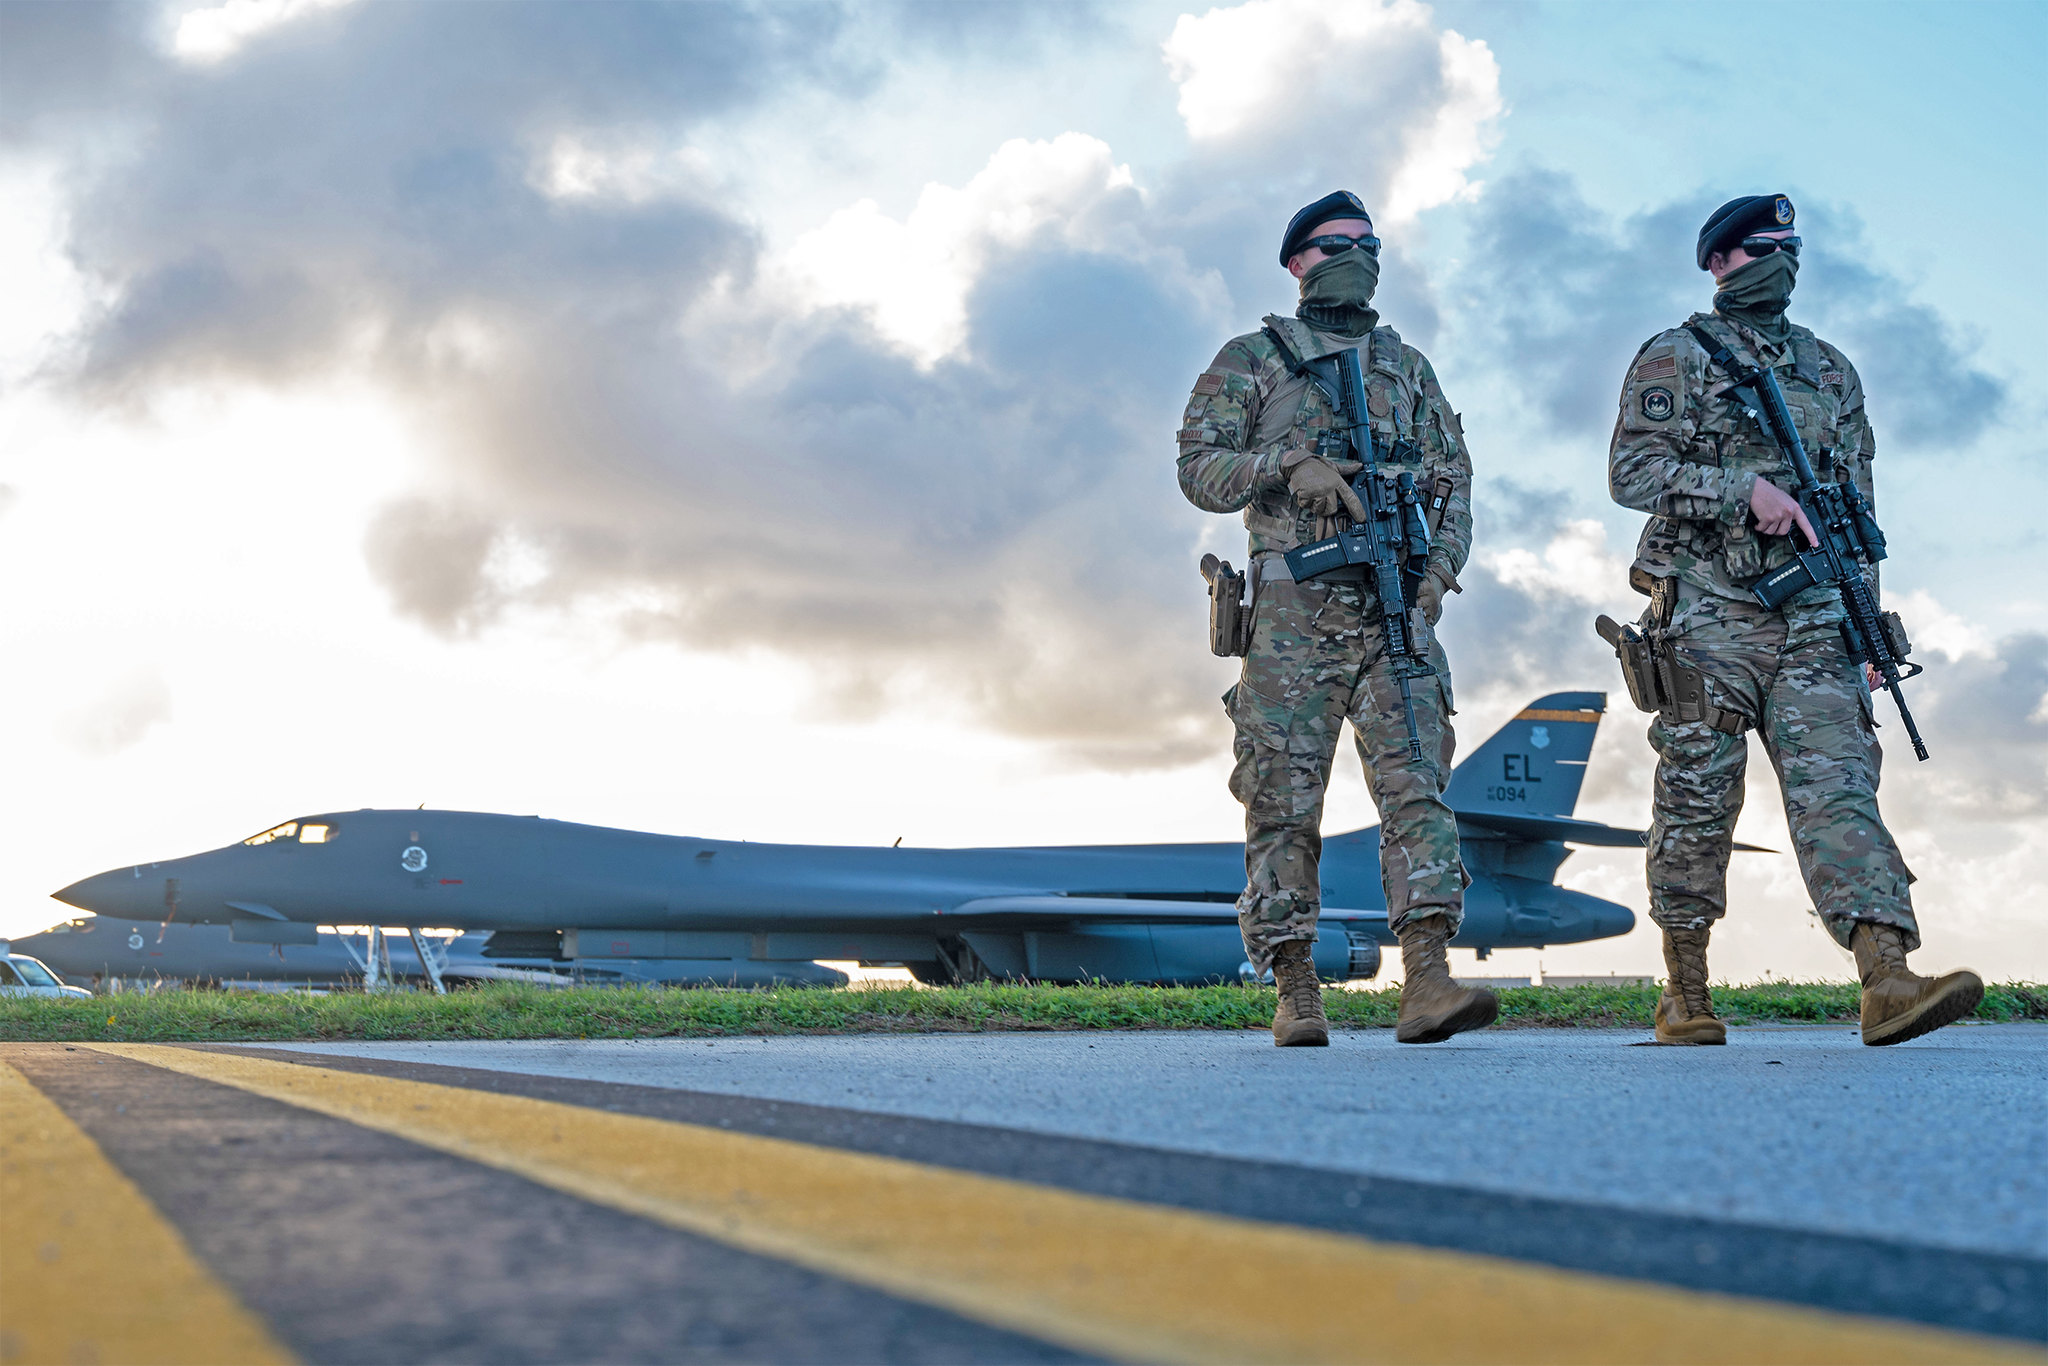 Security forces airmen patrol near a U.S. Air Force B-1B Lancer taxiway at Andersen Air Force Base, Guam, in support of a Bomber Task Force mission, Dec. 26, 2020. (Senior Airman Tristan Day/Air Force)